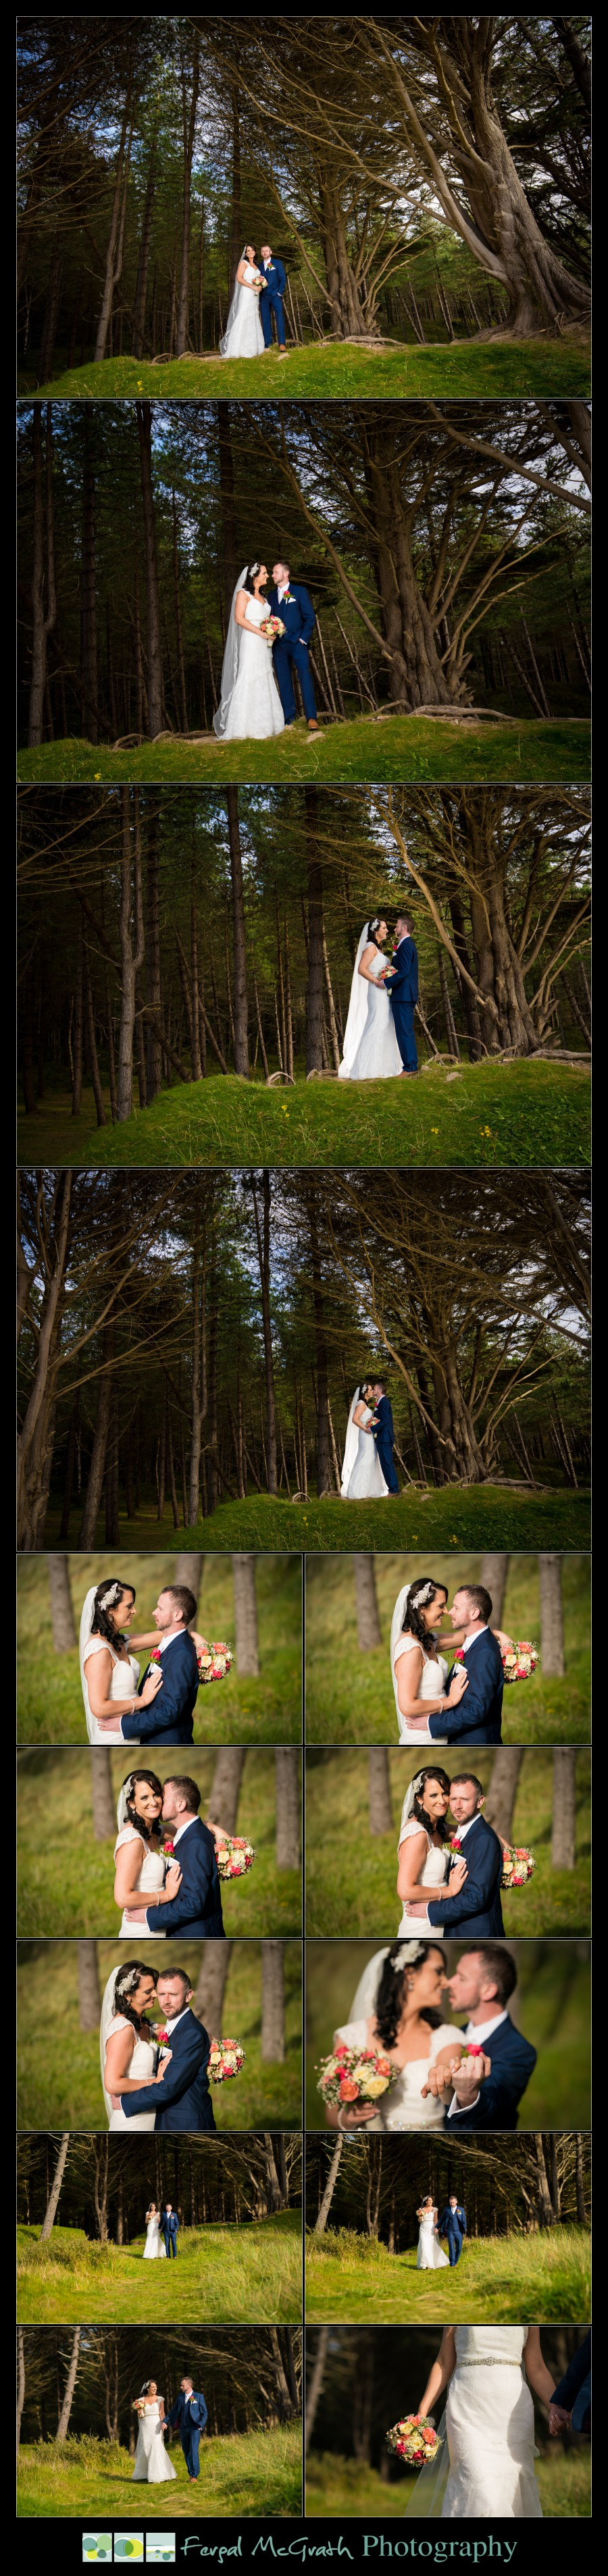 Mill Park Hotel Wedding Laura + John bride and groom photos at forest in murvagh